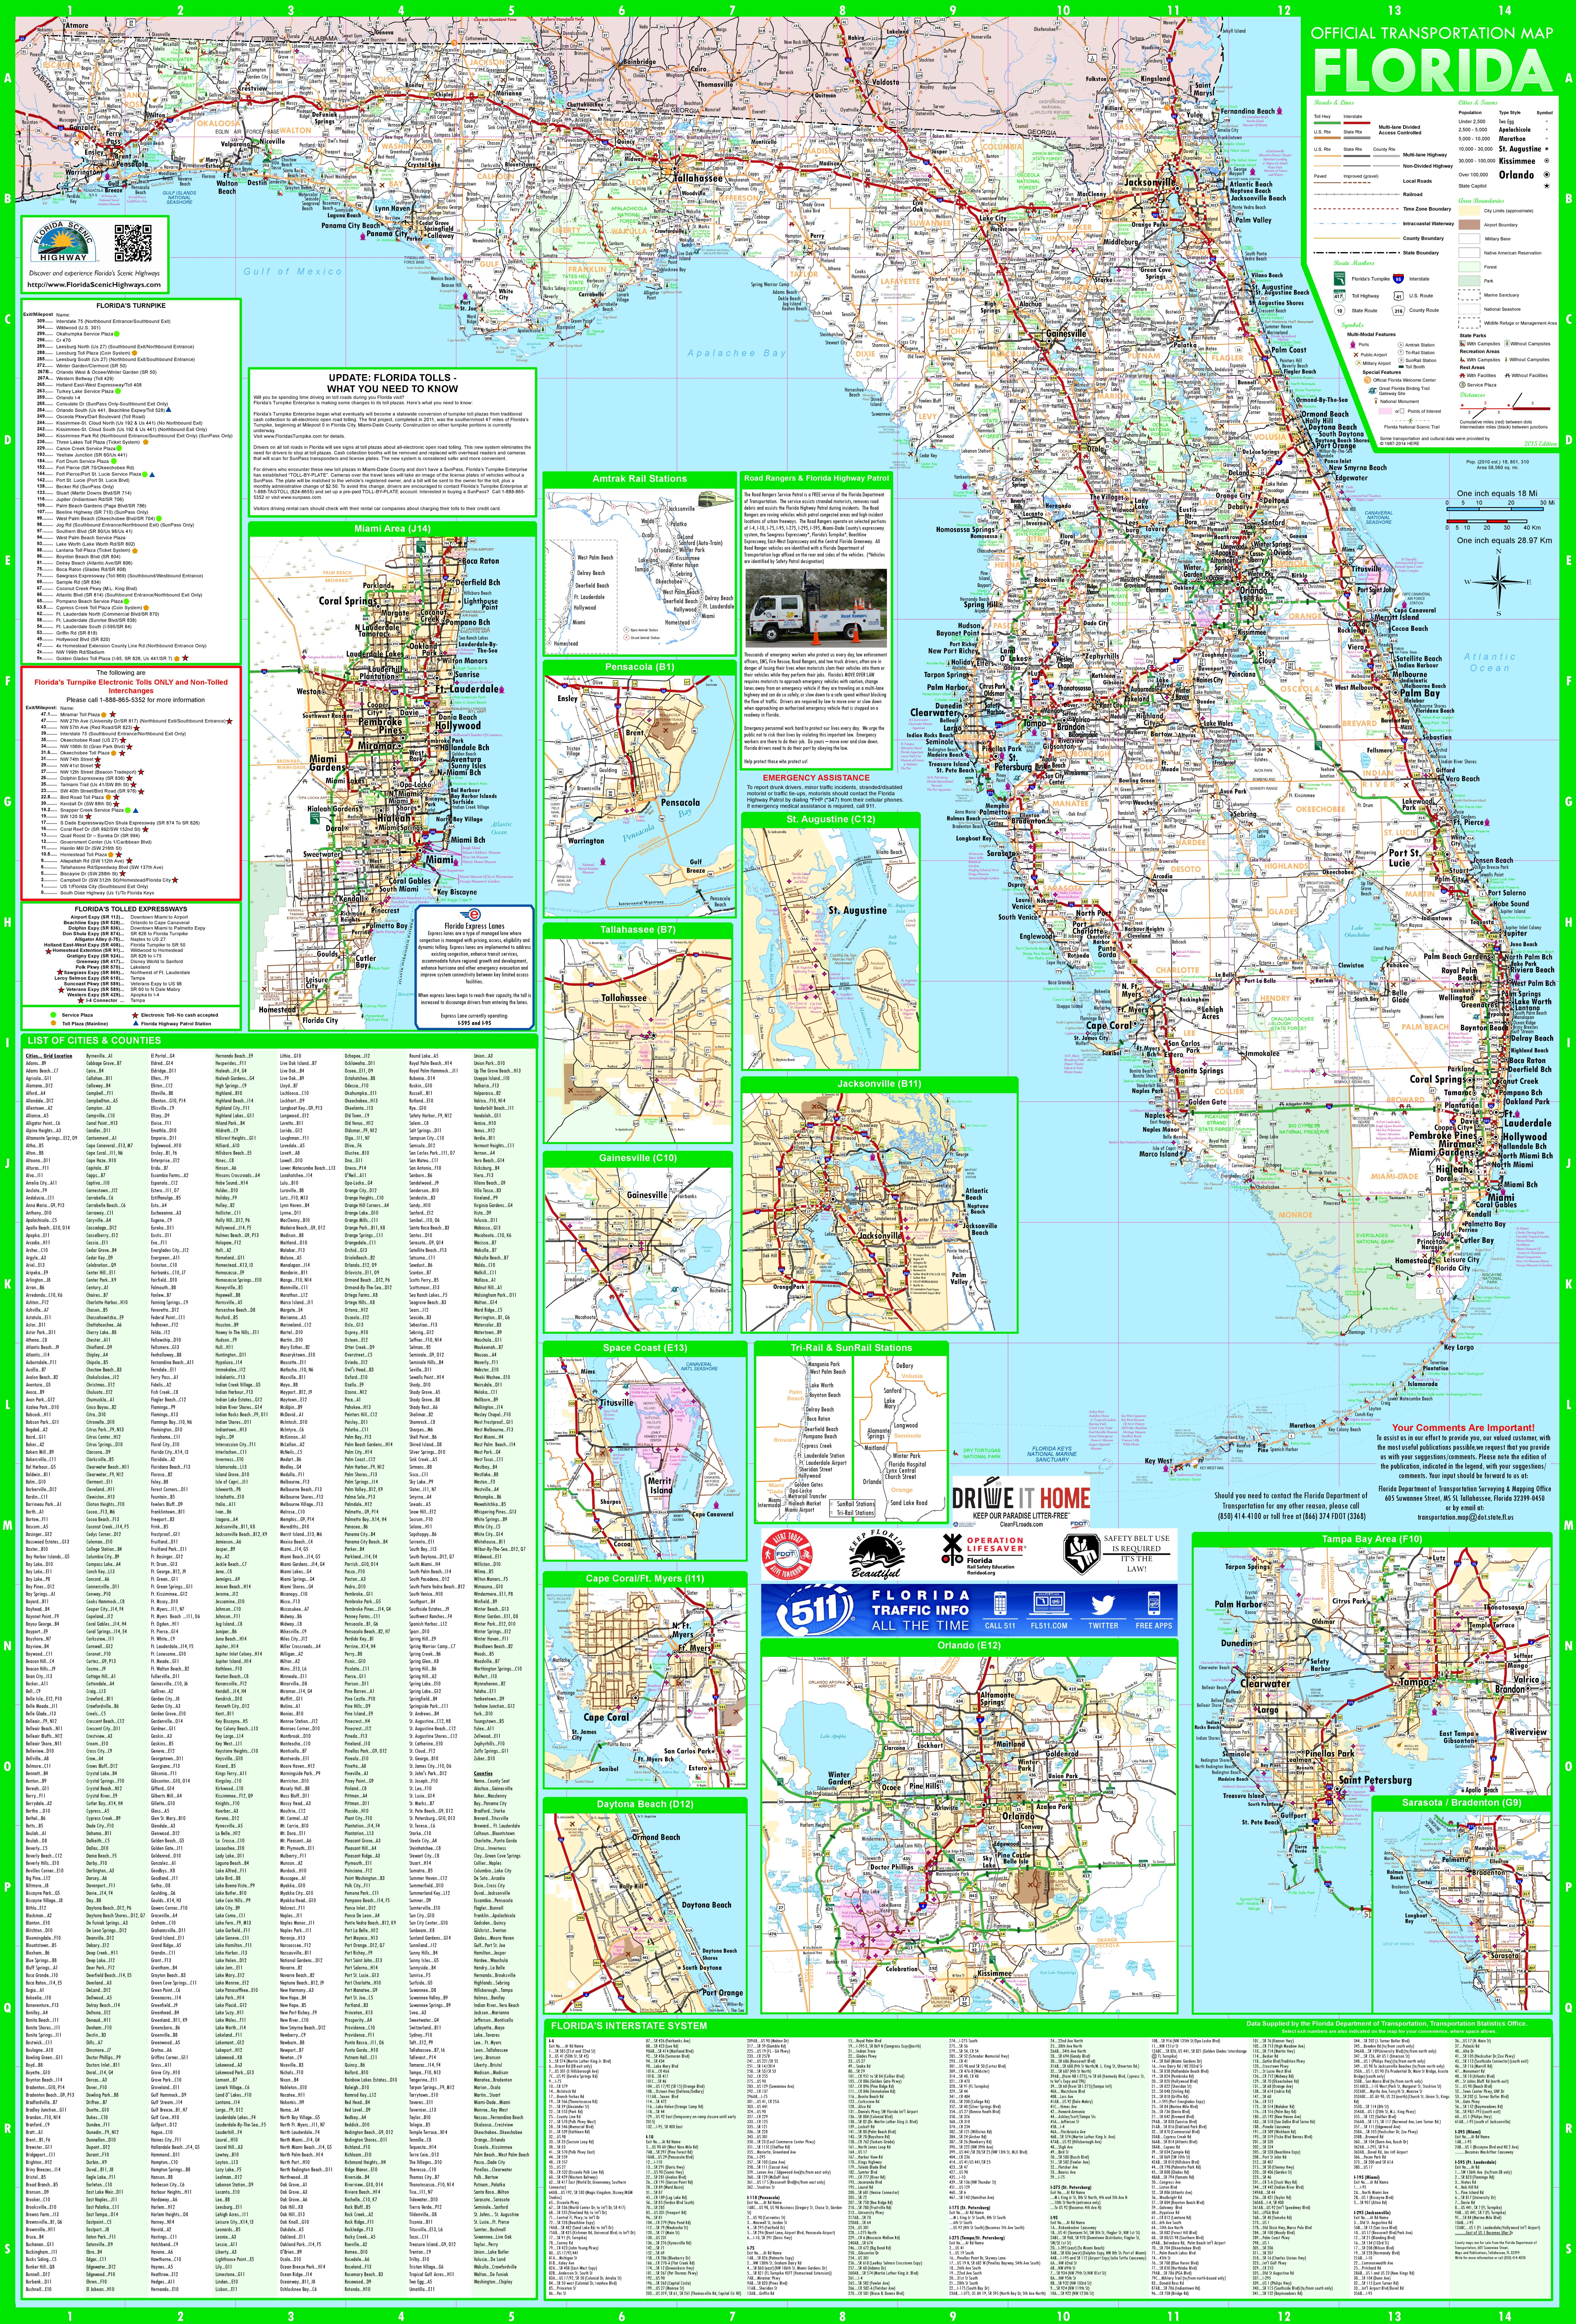 Large Detailed Map Of Florida With Cities And Towns - Giant Florida Map